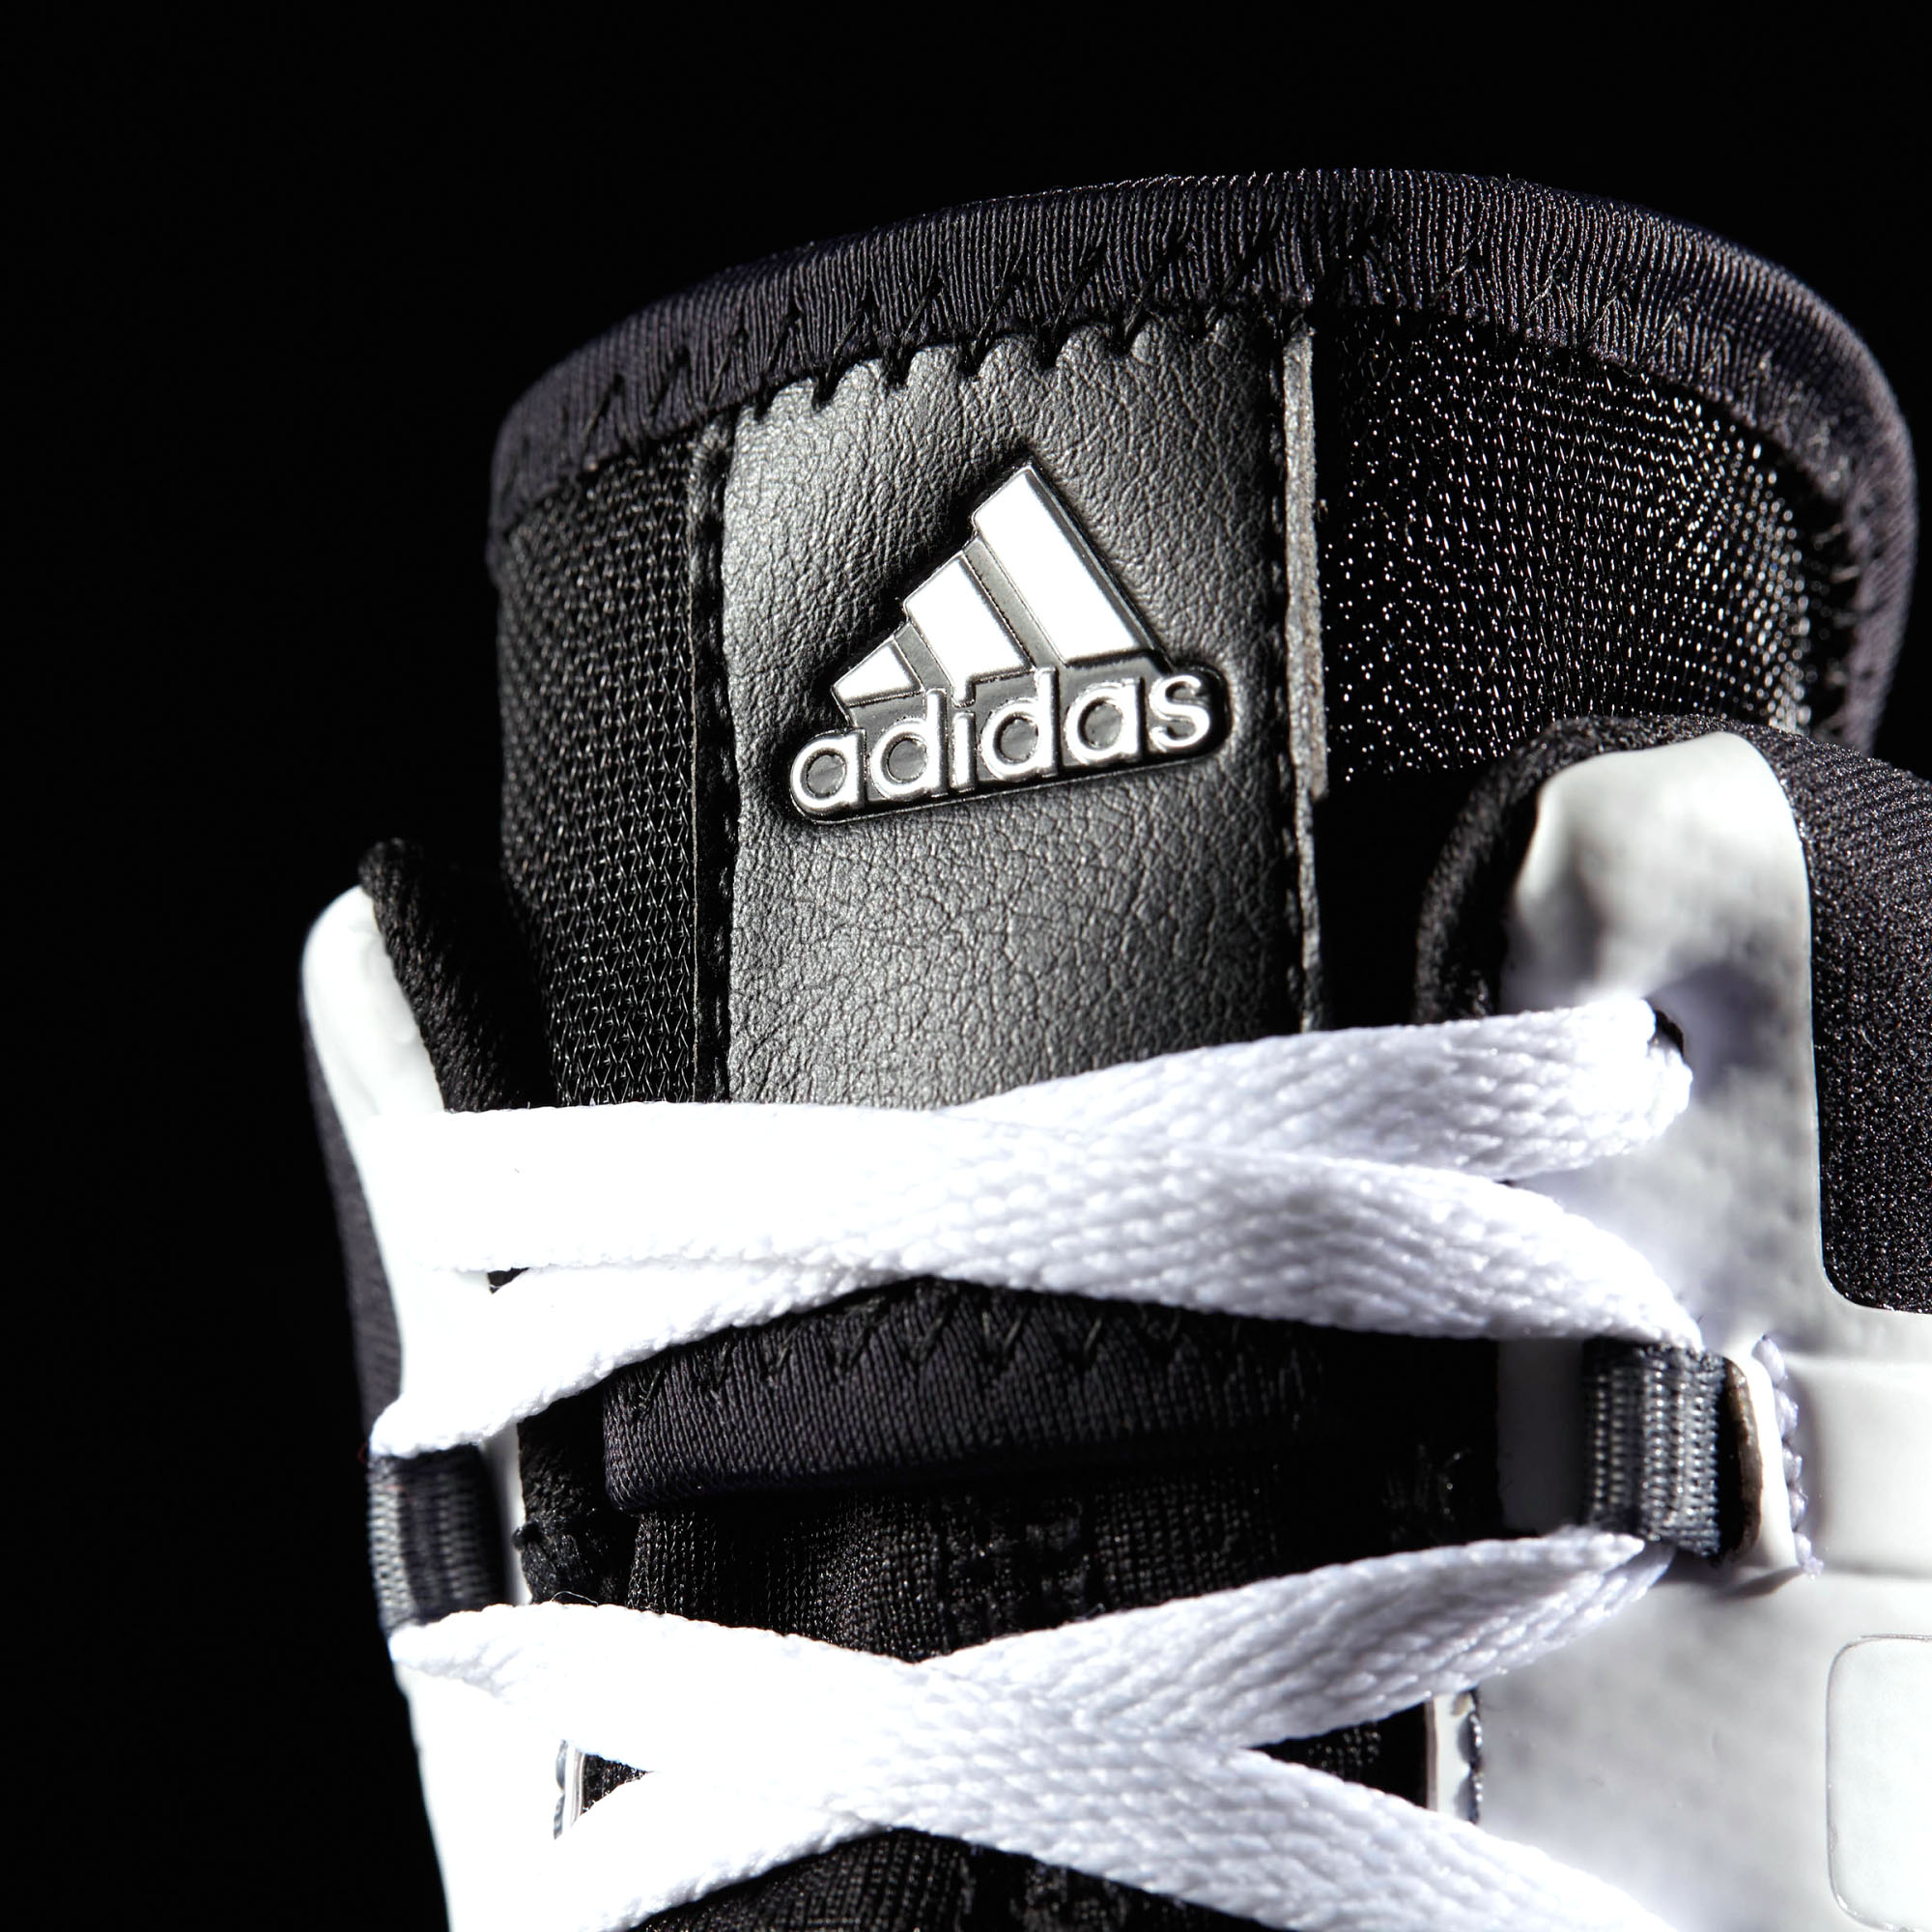 miniature 8 - Adidas-Flying-impact-wrestling-Trainer-Shoe-Boot-Noir-Blanc